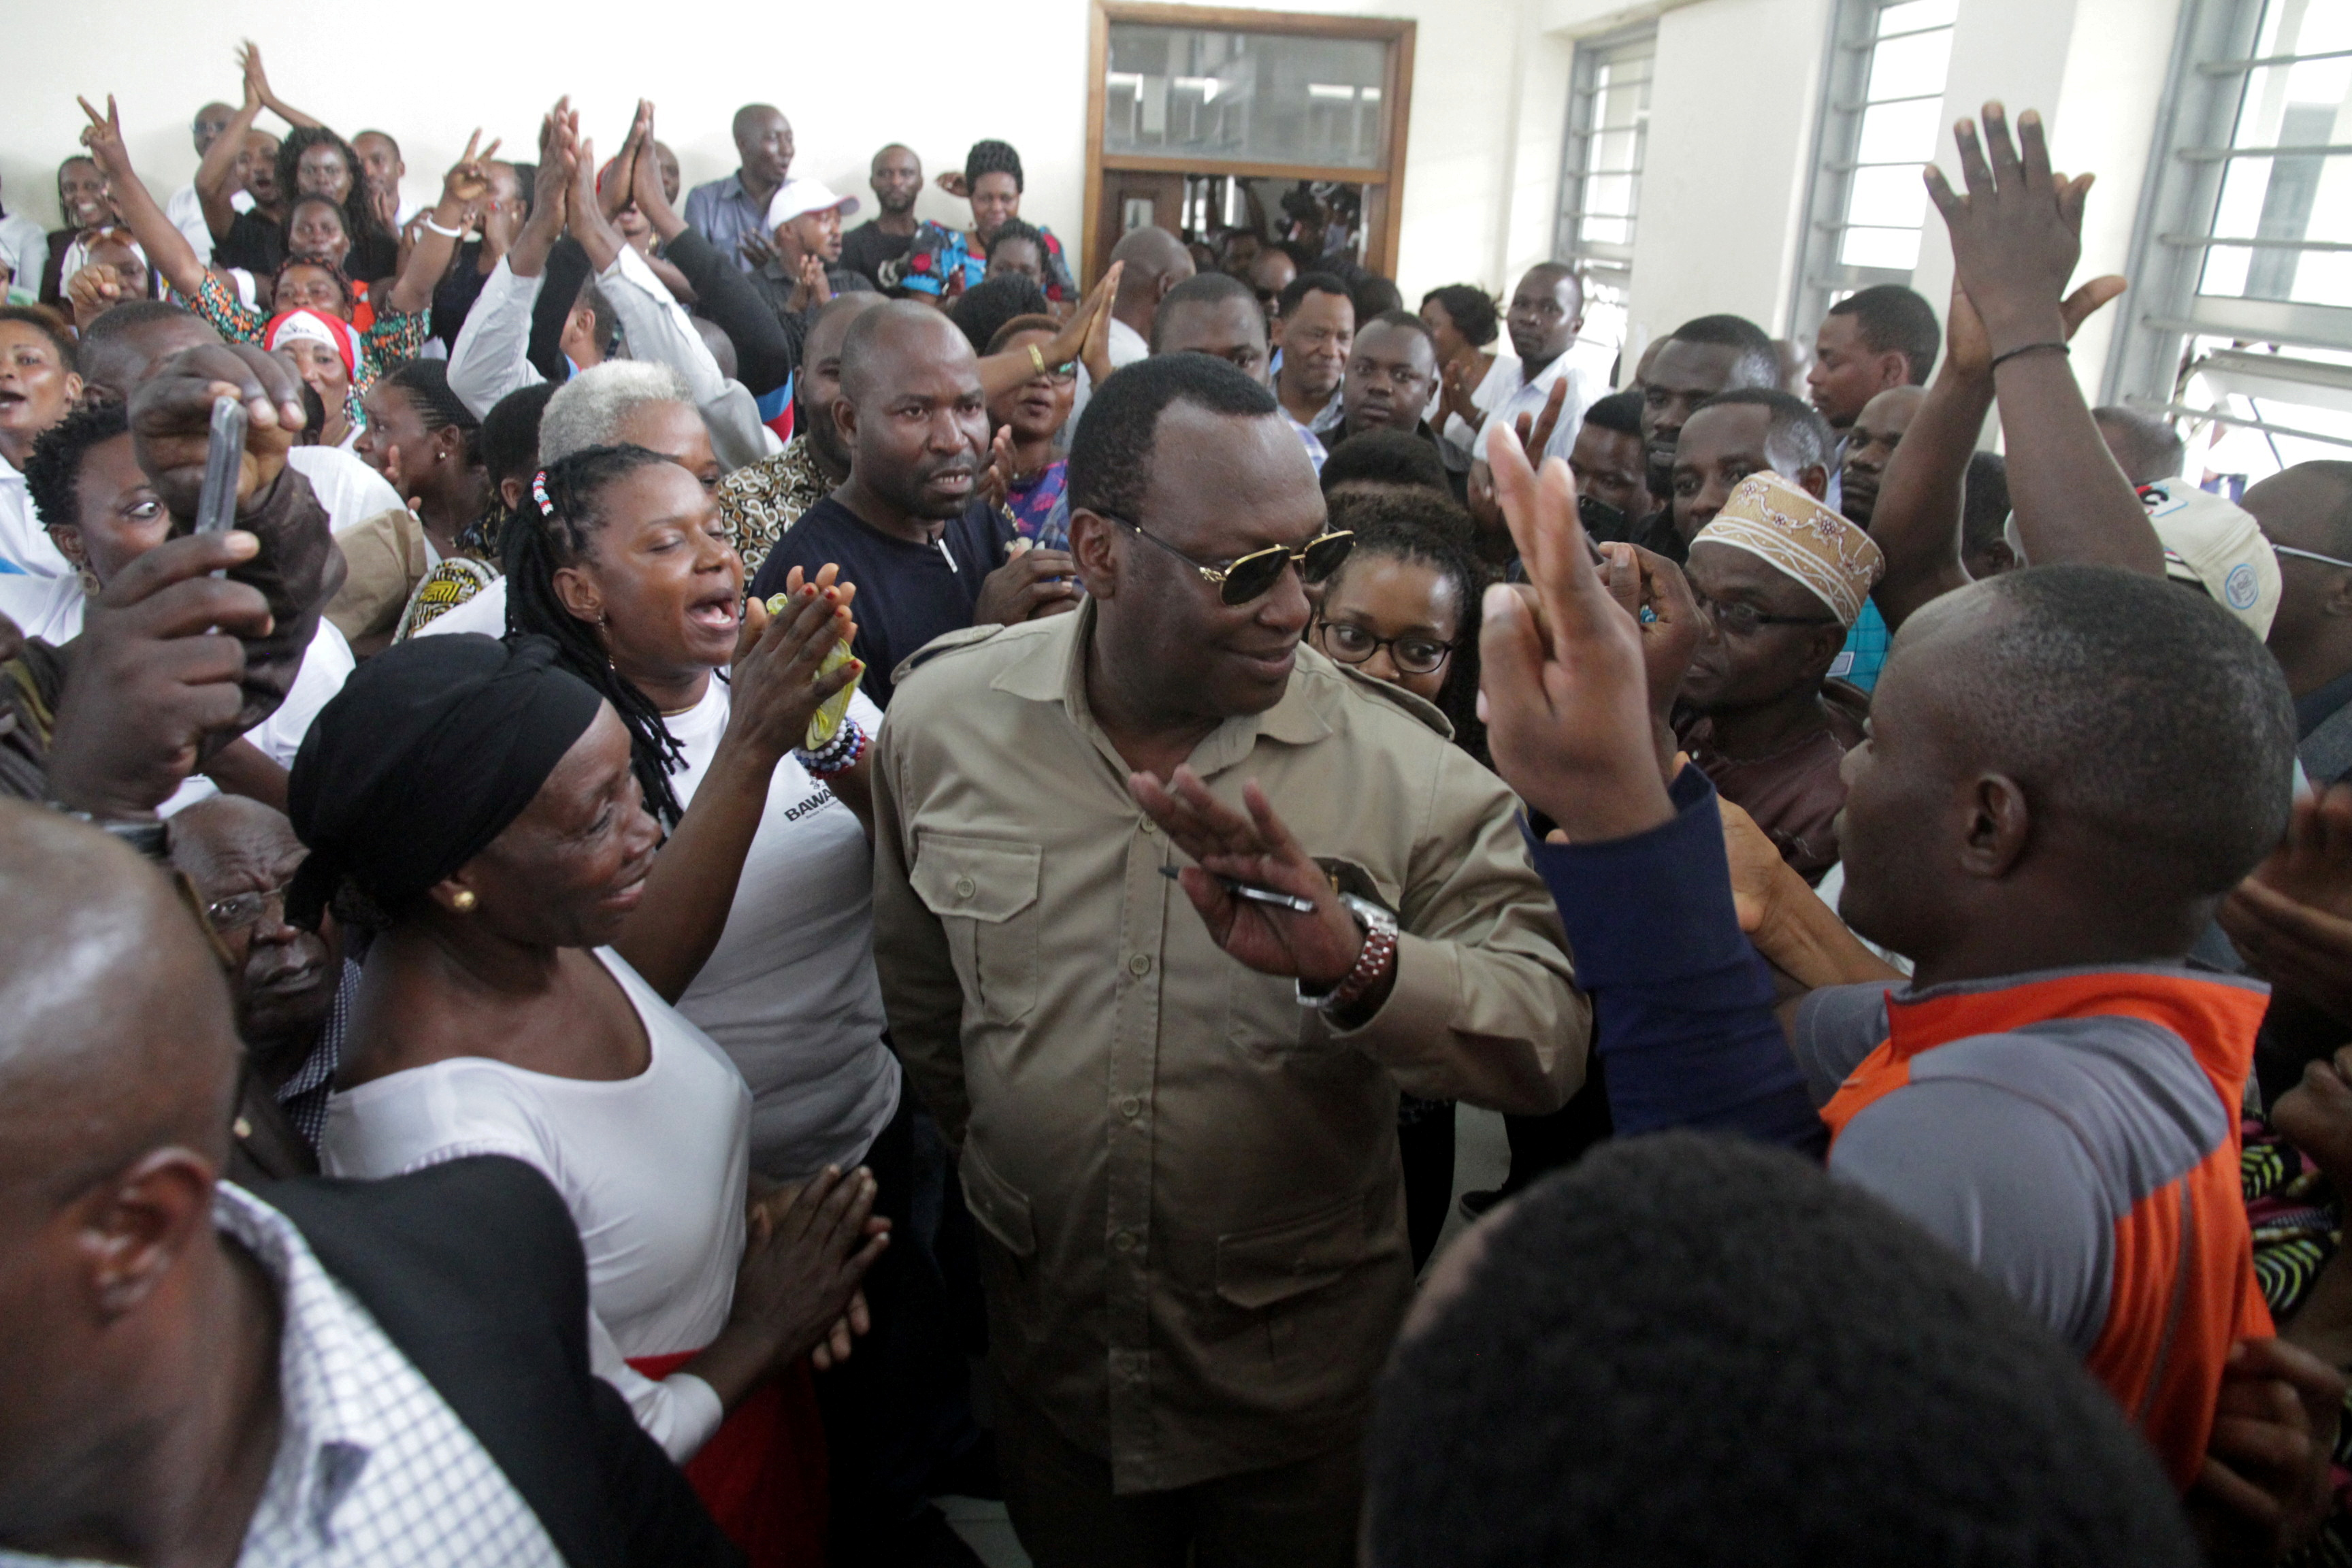 Freeman Mbowe (C), chairman of Chadema, Tanzania's main opposition party, arrives at Kisutu Magistrate Court in Dar es Salaam, Tanzania March 10, 2020. REUTERS/Emmanuel Herman/File Photo